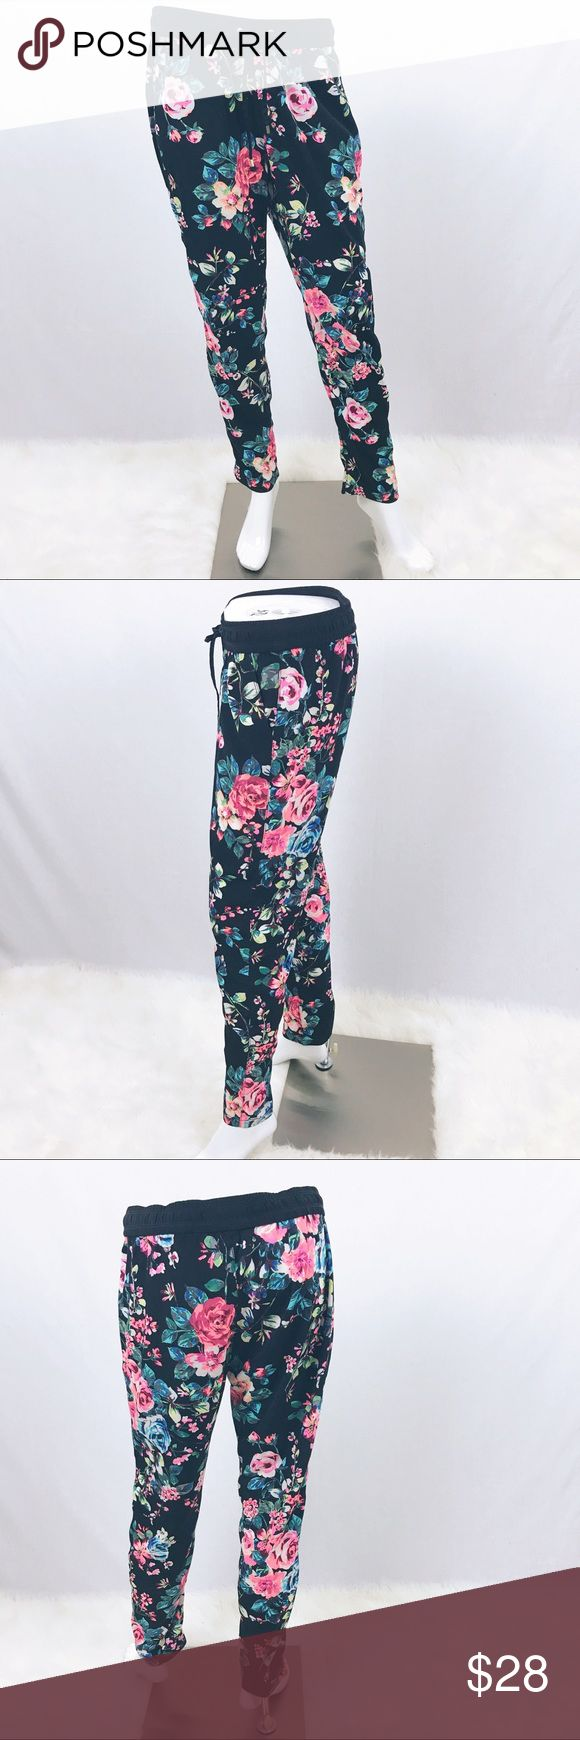 "Express Floral Jogger Cropped Soft Pants SMALL Express Pink Floral Joggers Black Cropped Soft Pants Women's SMALL S Waist 16""-17.5"" Rise 10"" Inseam 28"" Express Pants Track Pants & Joggers"